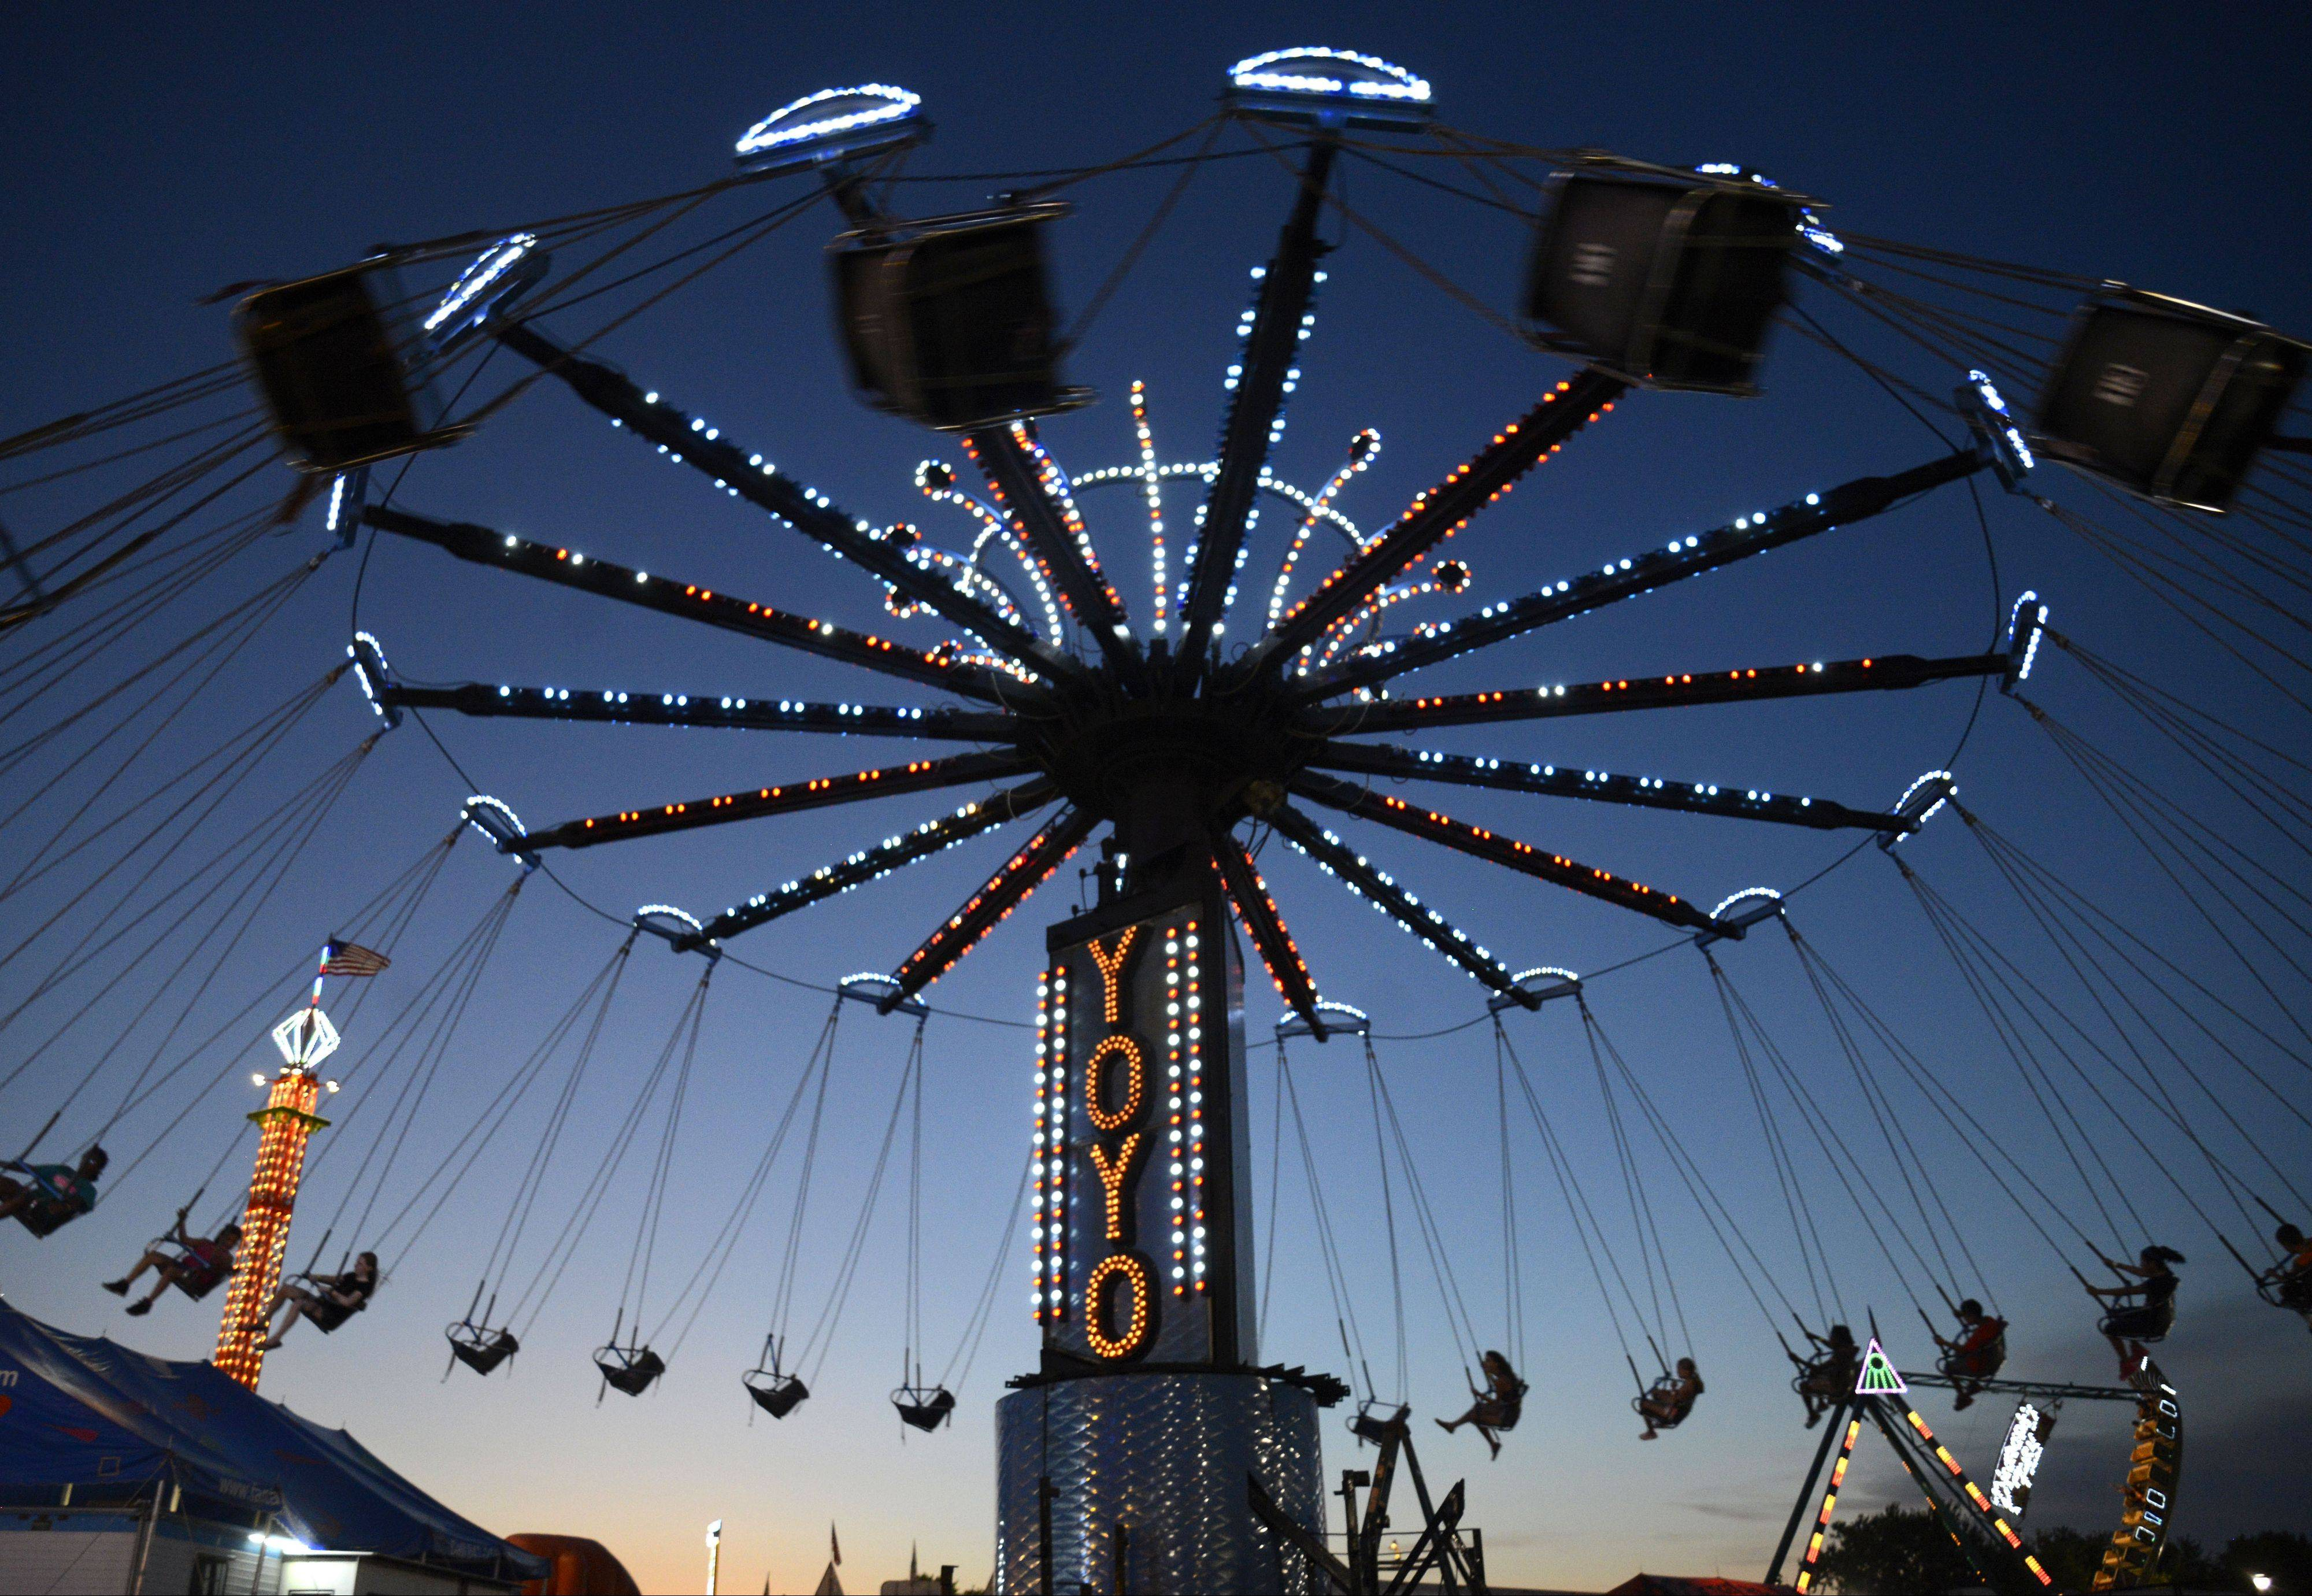 The Kane County Fair opens at the Kane County Fair Grounds in St. Charles on Wednesday. Discounted ride wristbands, coupons for entrance fees and other promotions are available on the fair�s $START_URL$website;http://kanecountyfair.com/$STOP_URL$.